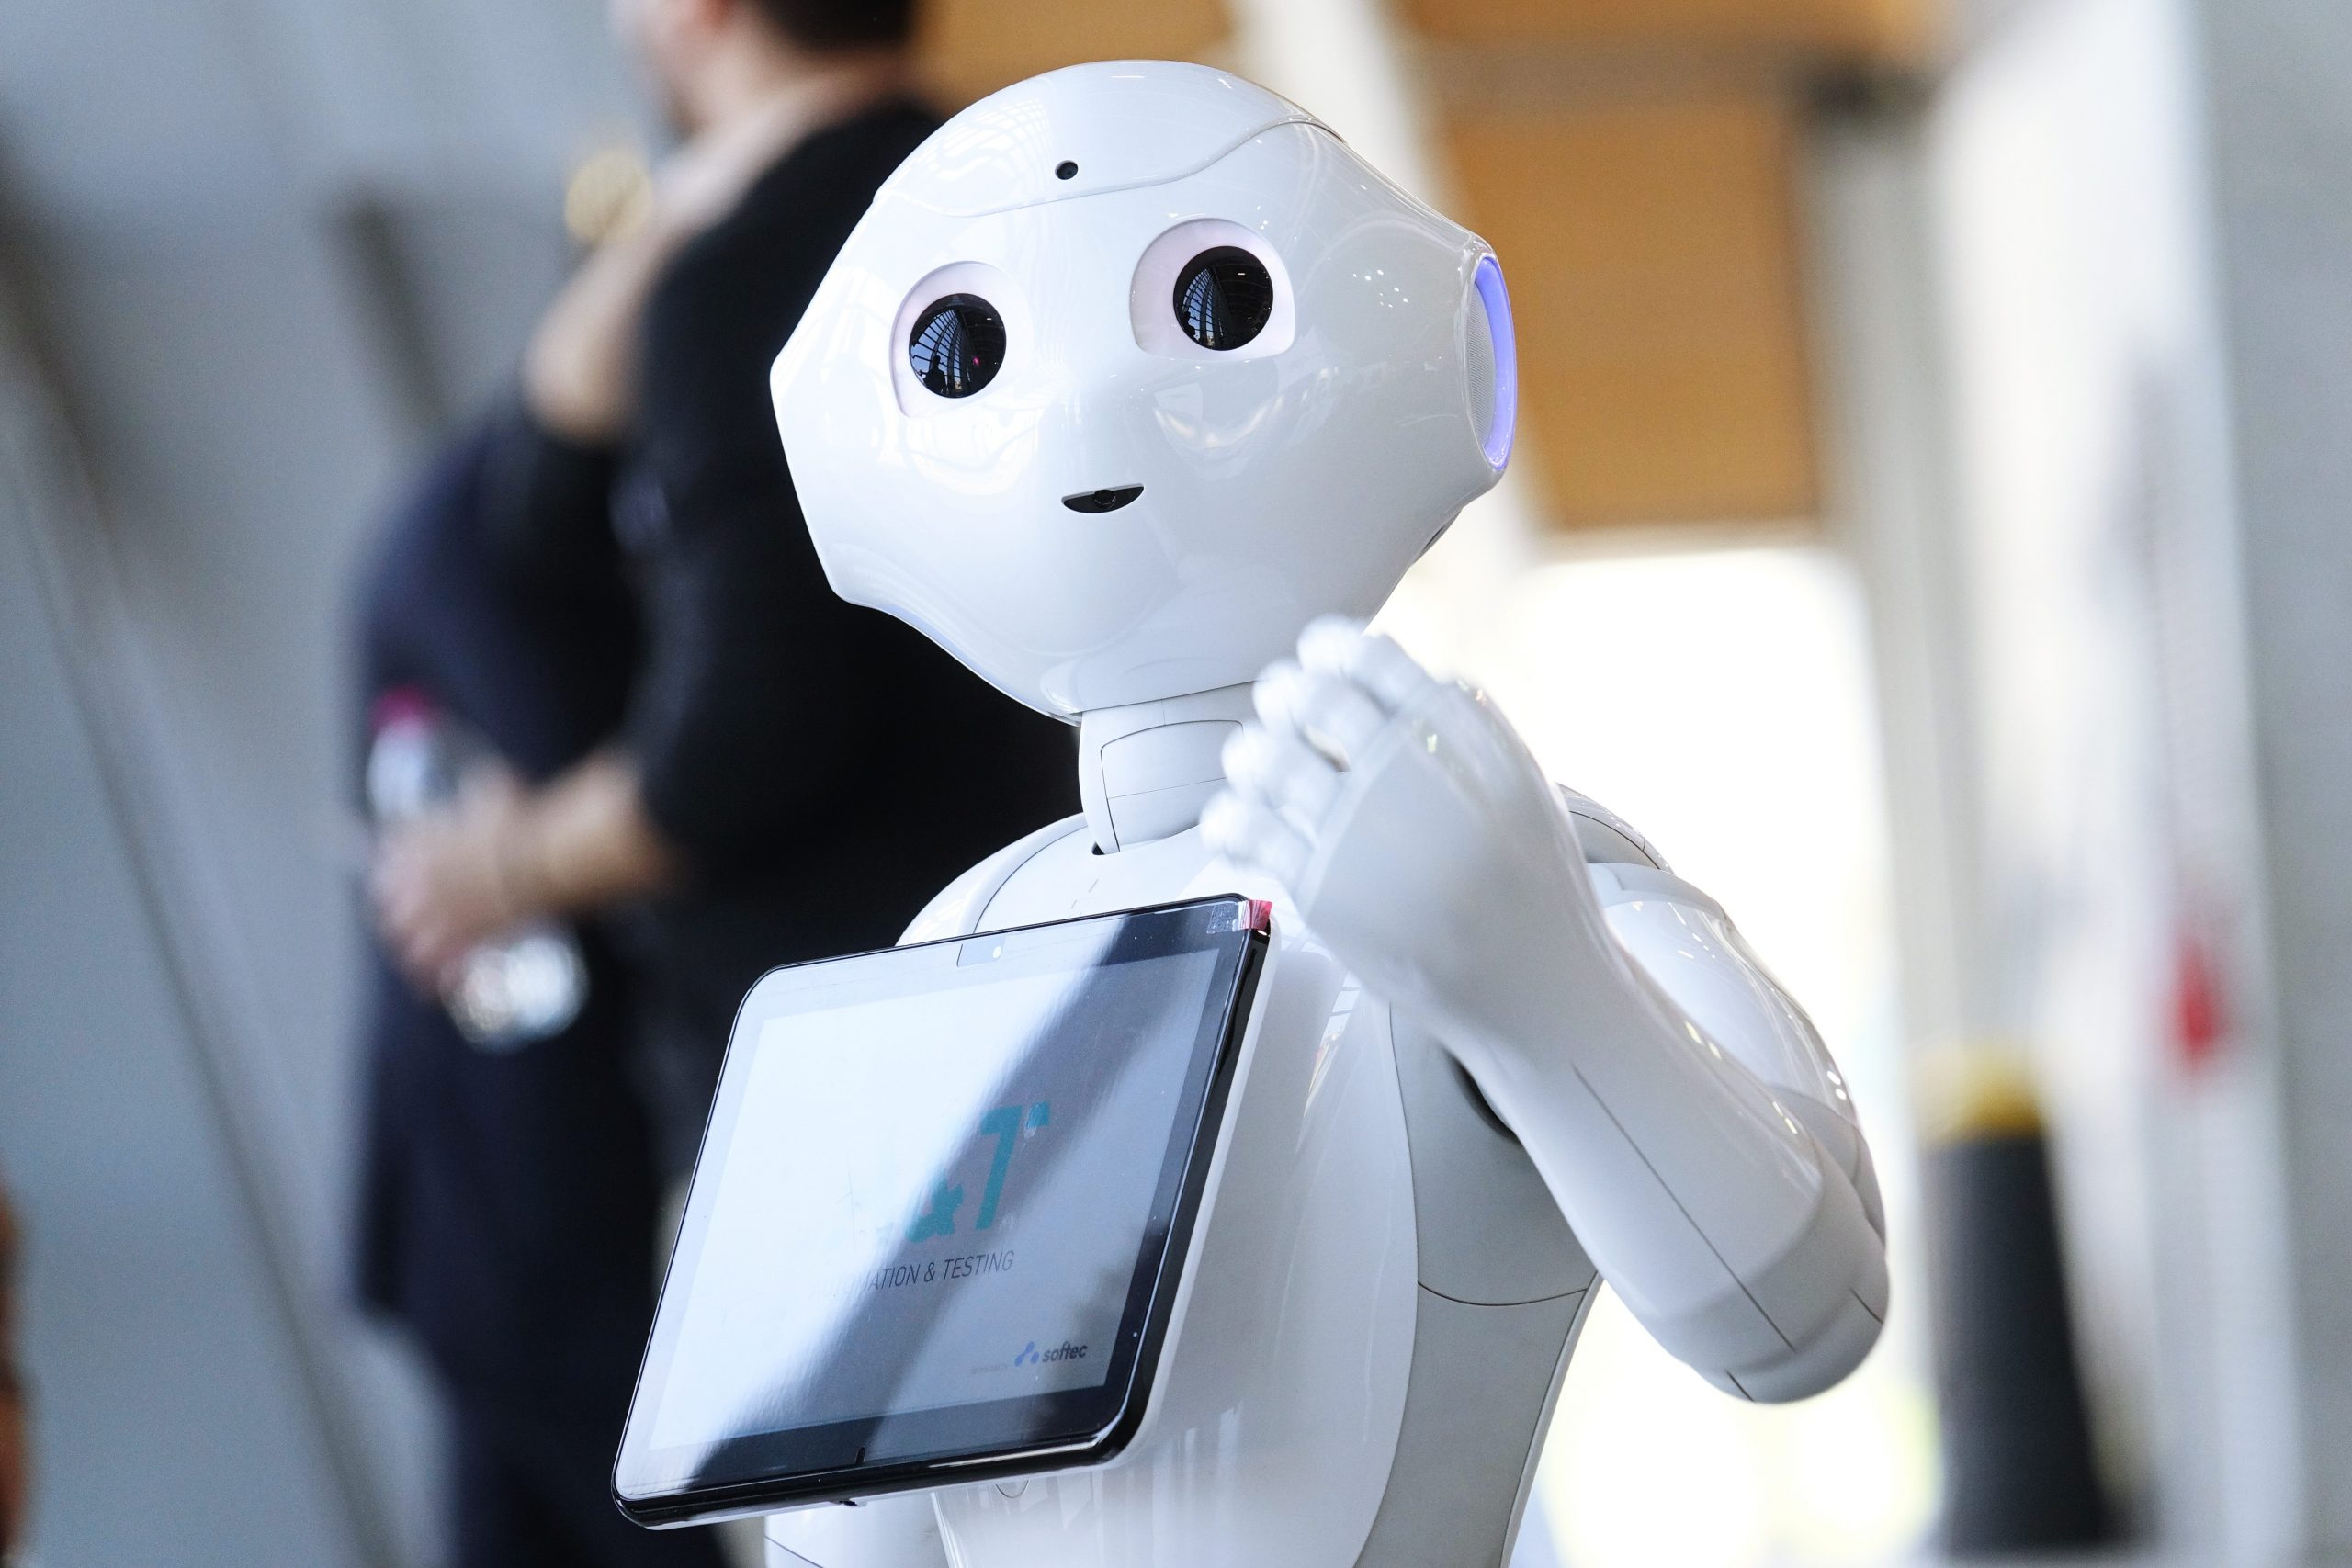 Friendly robot assistant with a digital screen to give information